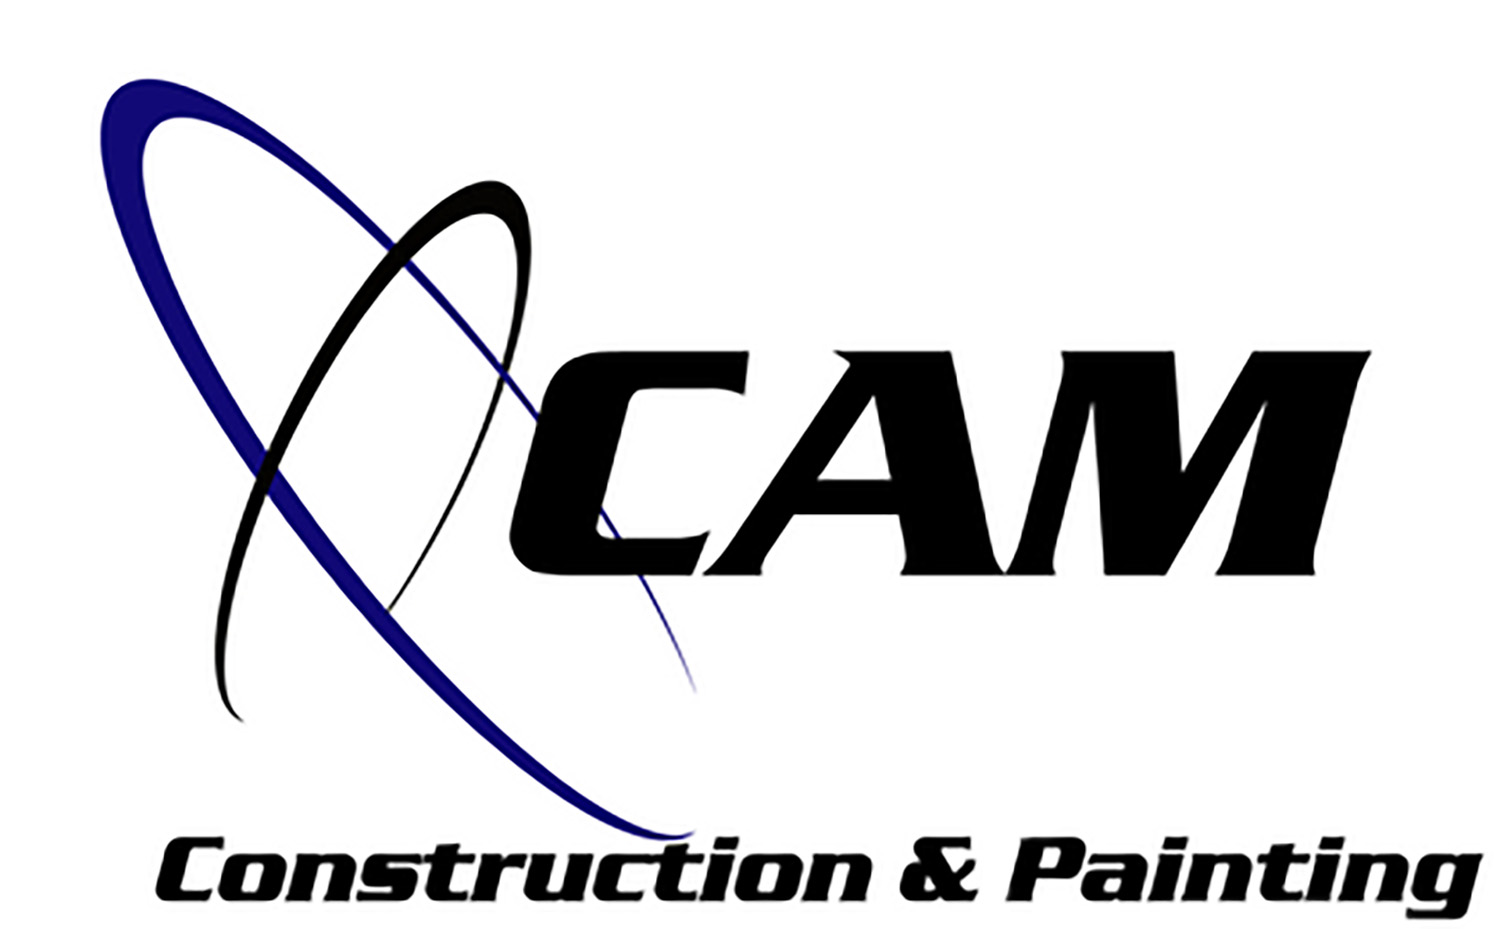 http://camconandpainting.com/wp-content/uploads/2016/01/Revised-Logo-Final.jpg